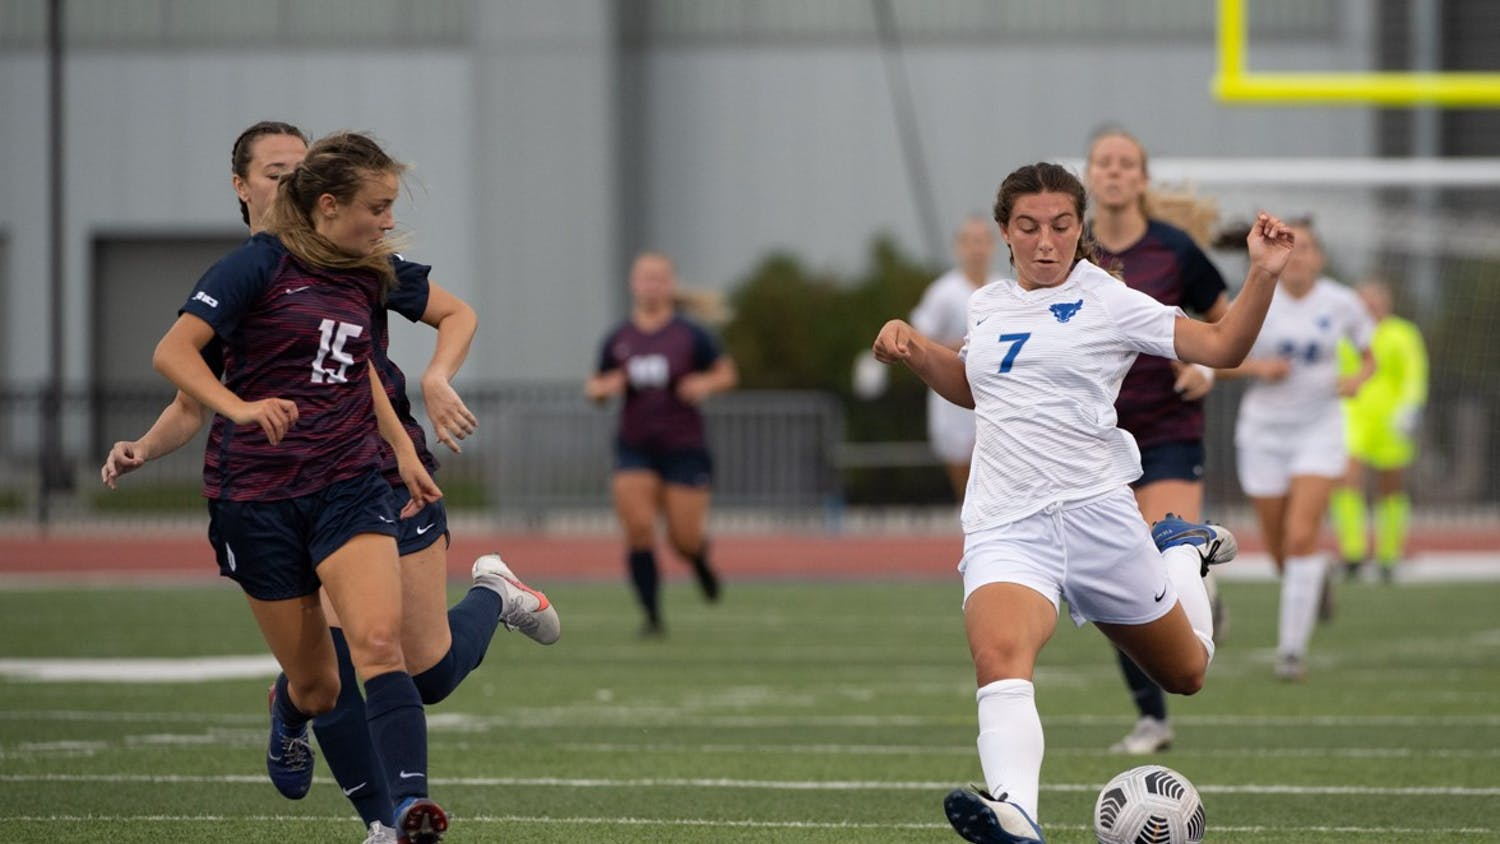 Women's soccer shut out Canisius 2-0, on Thursday night at the Demske Sports Complex, then returned home to UB Stadium Sunday afternoon where they shut out Duquesne, 4-0.